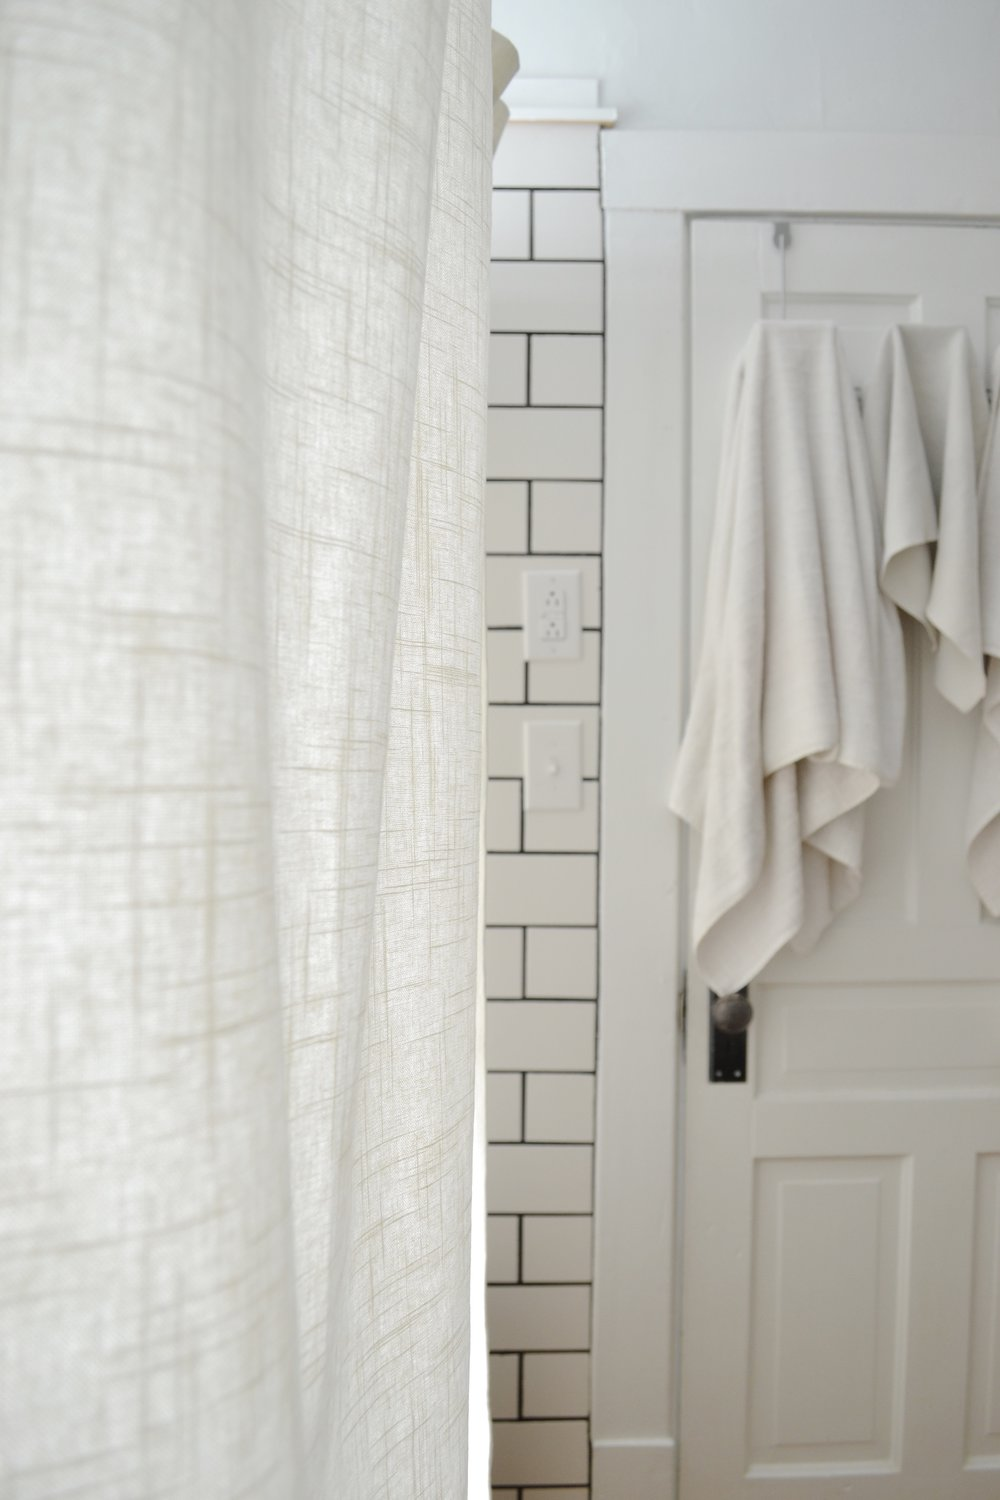 around traditional fabulous vanity table shower rod bathroom thevol wrap graceful with tub curtain clawfoot